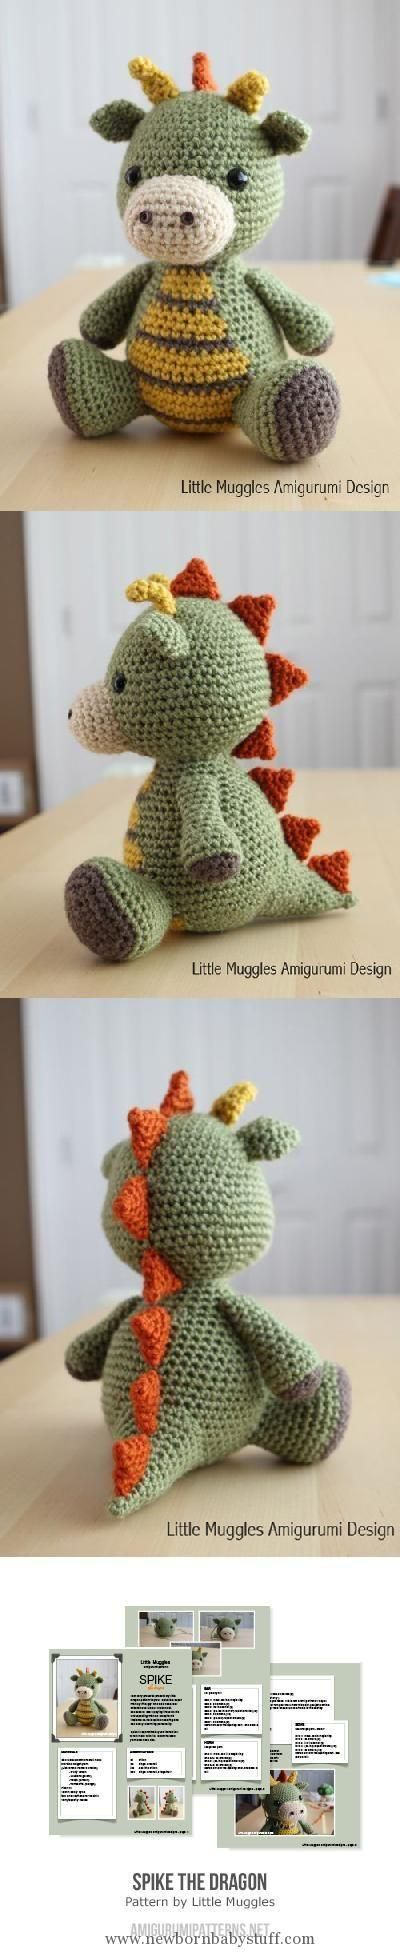 Baby Knitting Patterns Crochet Baby Dragon Pattern Free Tutorial | The WHOot...